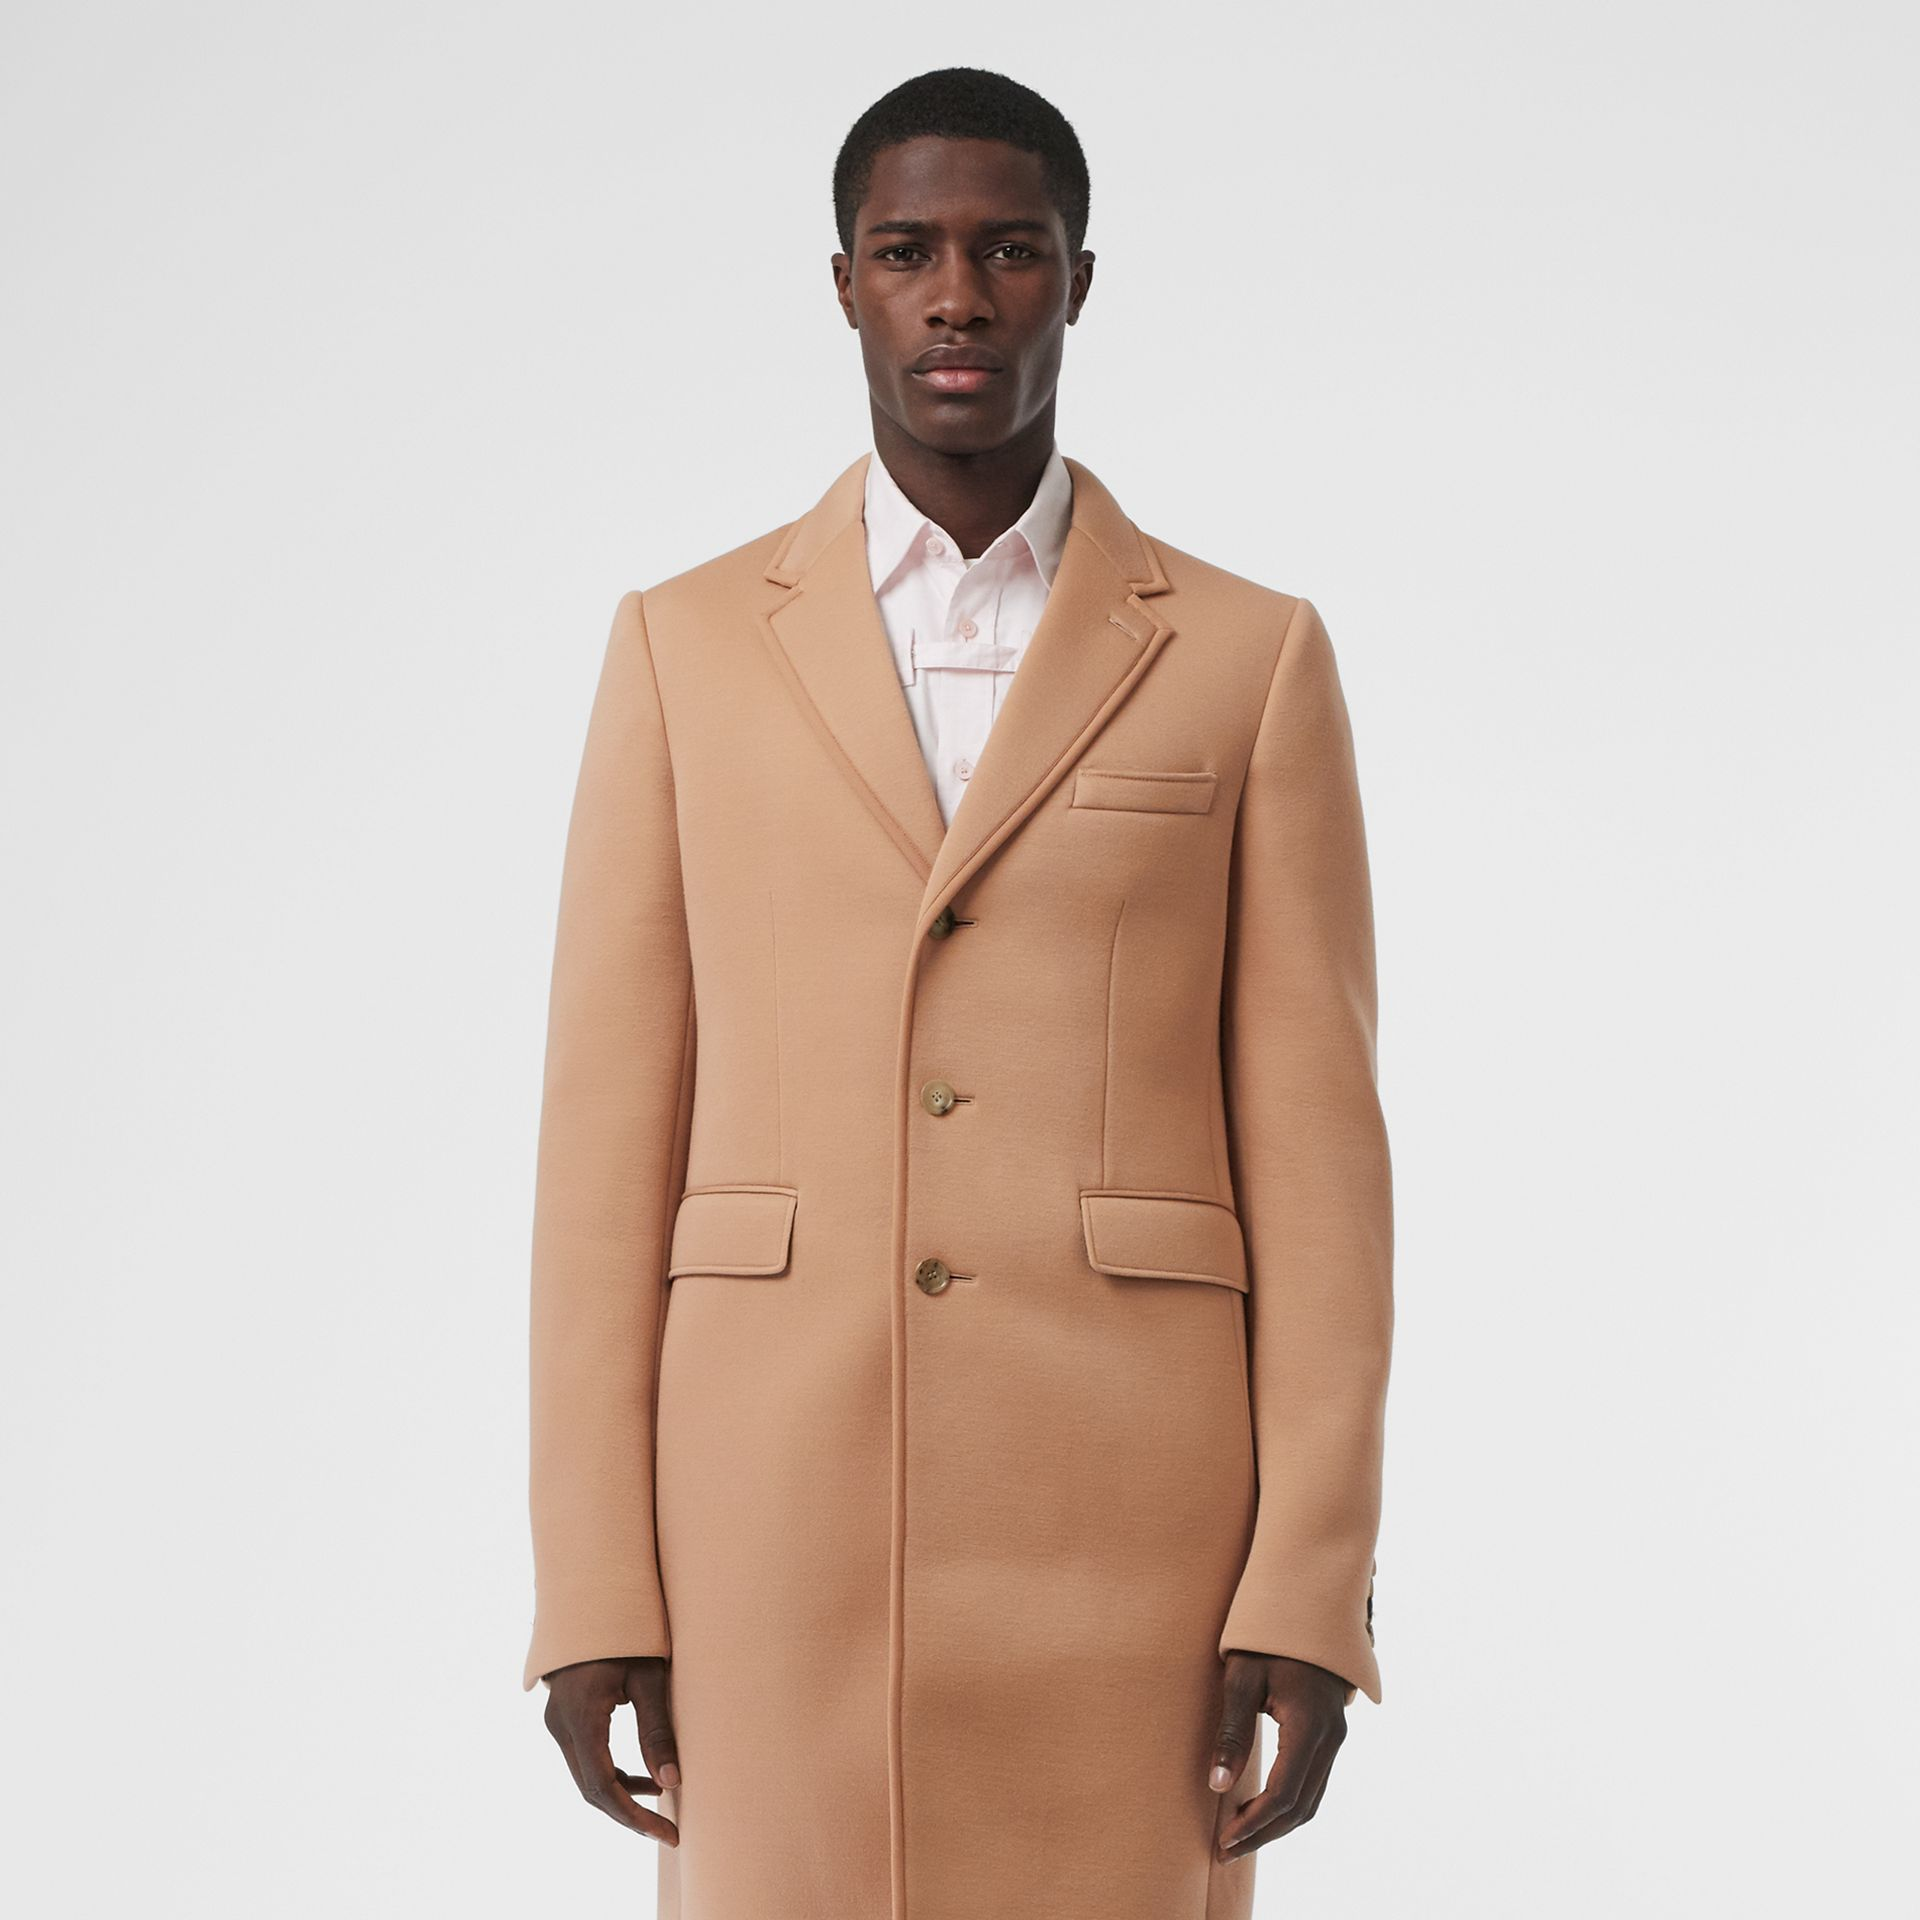 Neoprene Tailored Coat in Beige | Burberry - gallery image 6